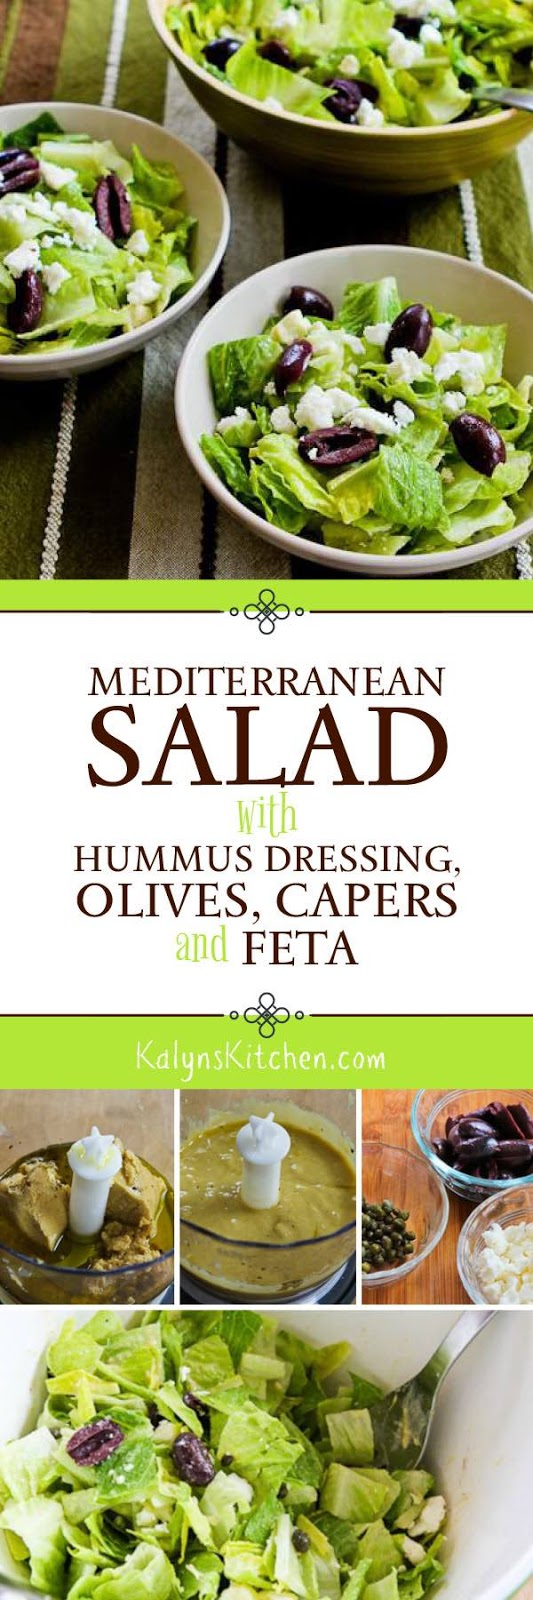 Mediterranean Salad with Hummus Dressing, Olives, Capers ...